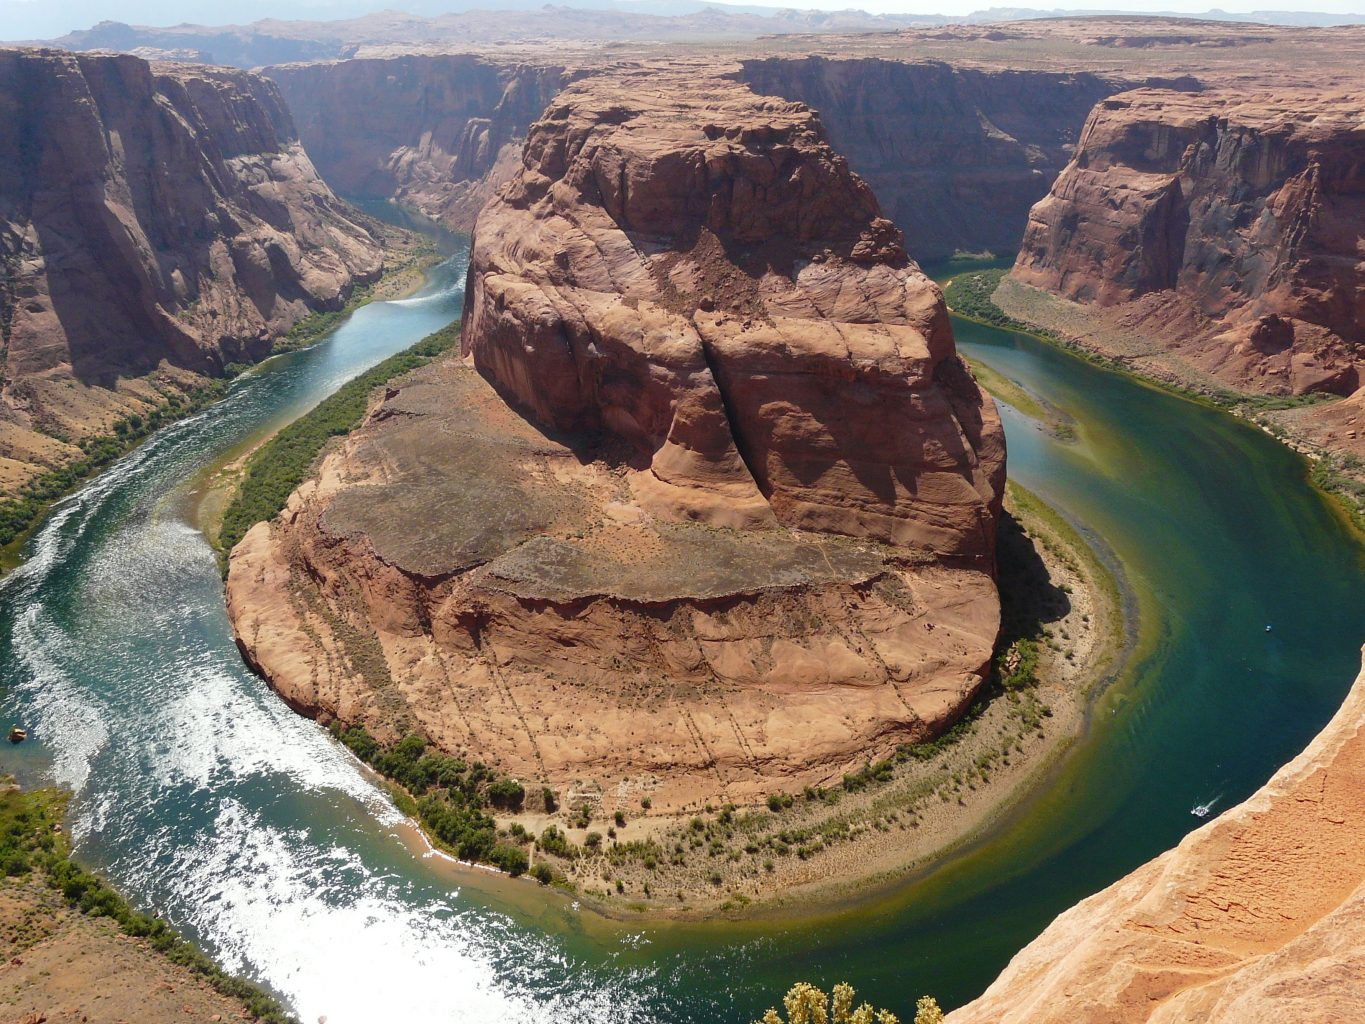 Horseshoe Bend. Visitar Horseshoe Bend